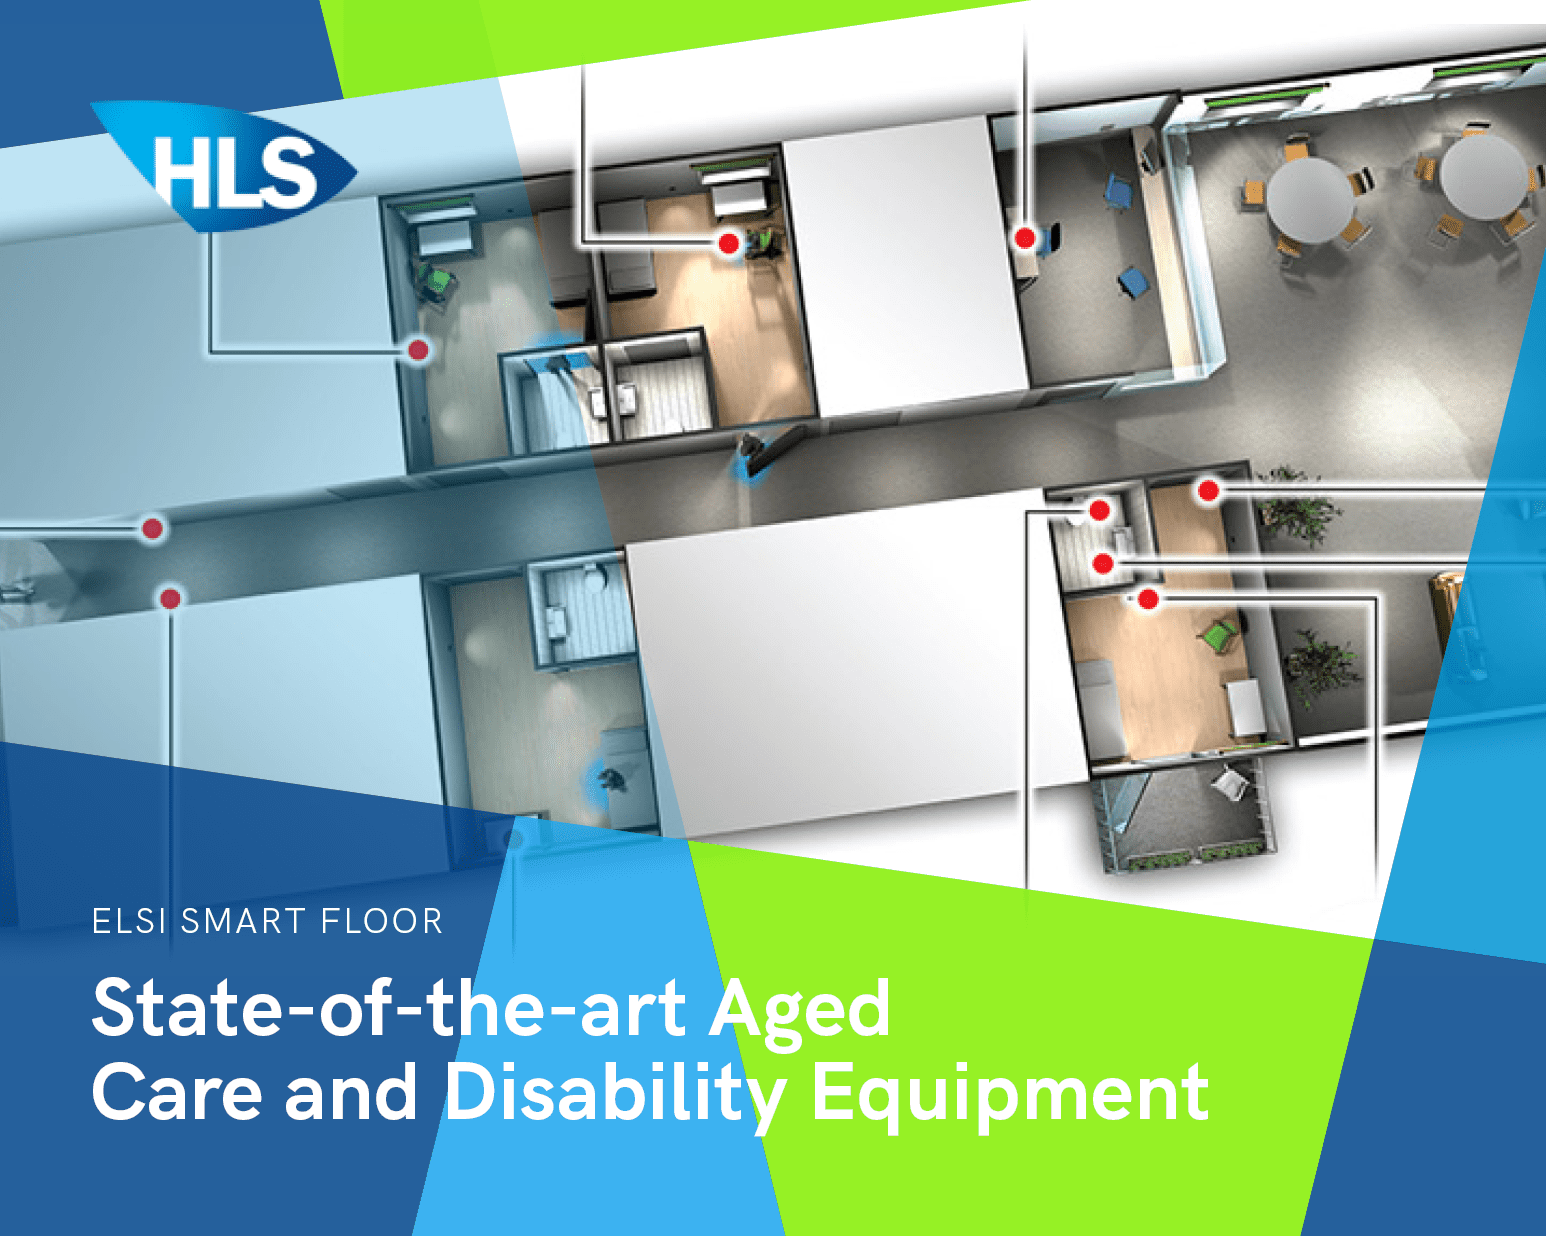 State-of-the-art Aged Care and Disability Equipment - Elsi Smart Floor